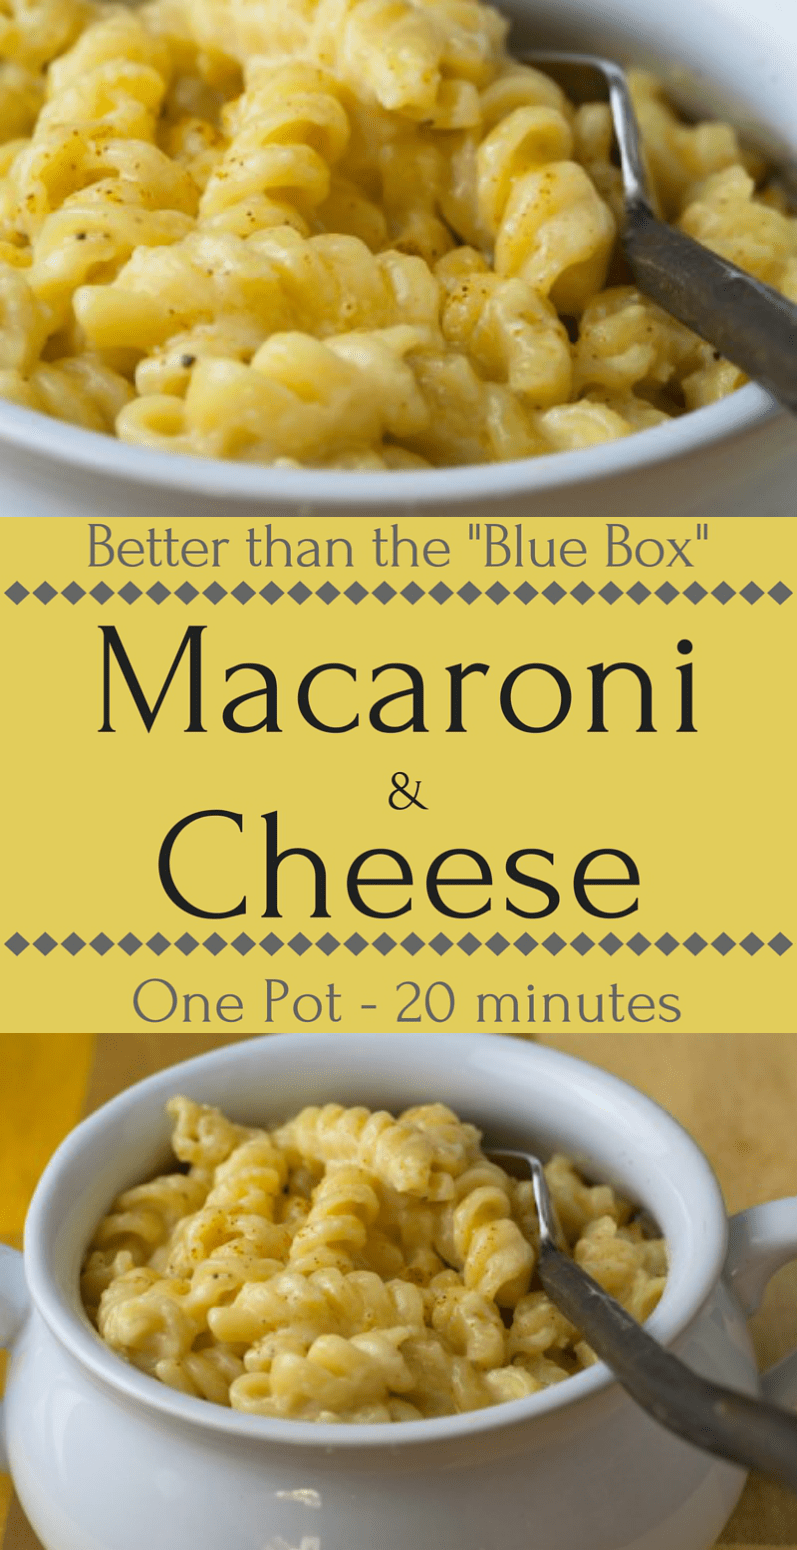 """Mac and cheese that's better than the """"Blue Box"""" and ready in under 20 minutes!"""